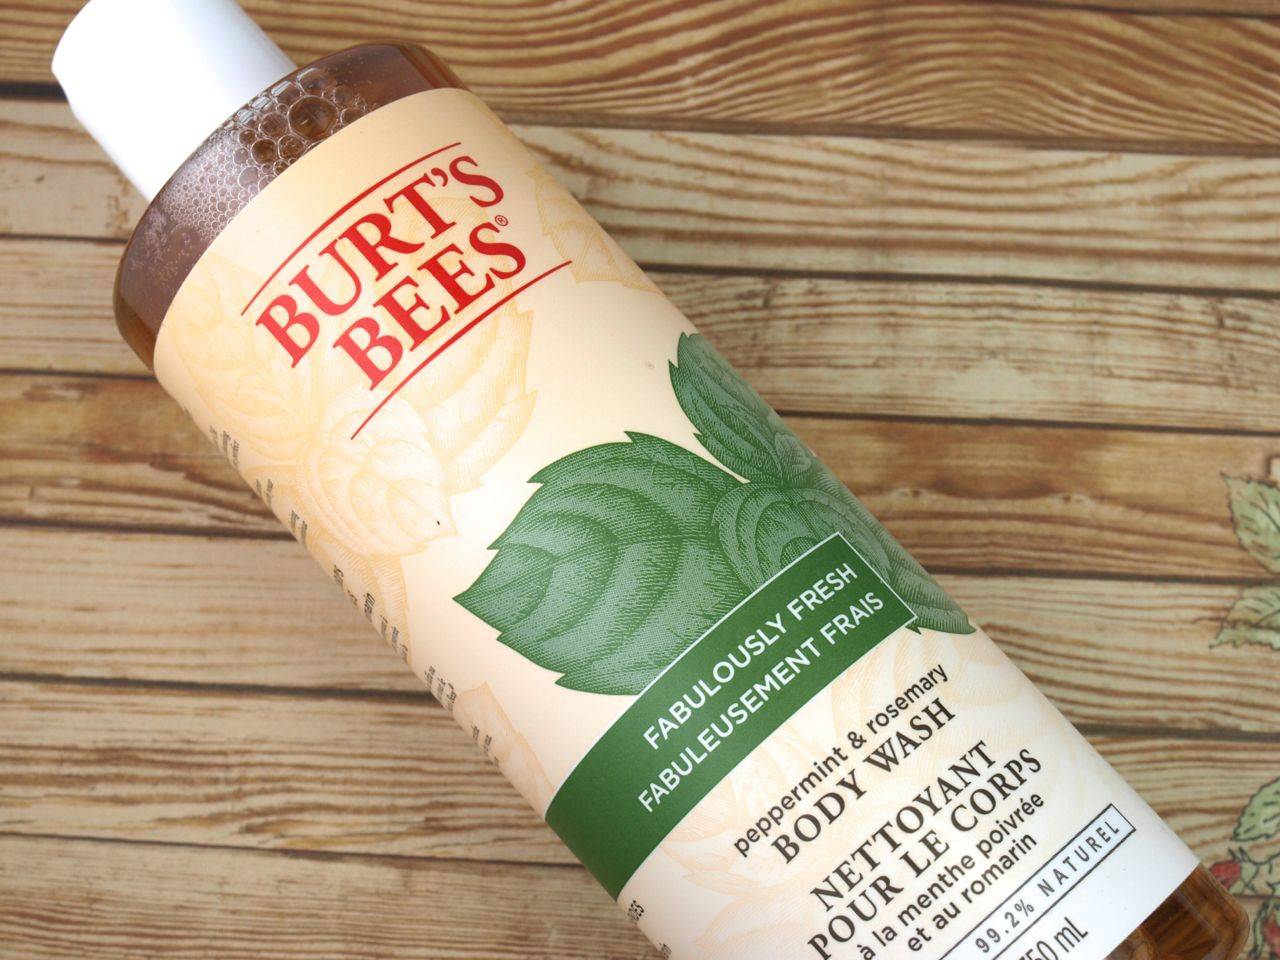 Burt's Bee Holiday 2014 Energizing Peppermint Kit: Review